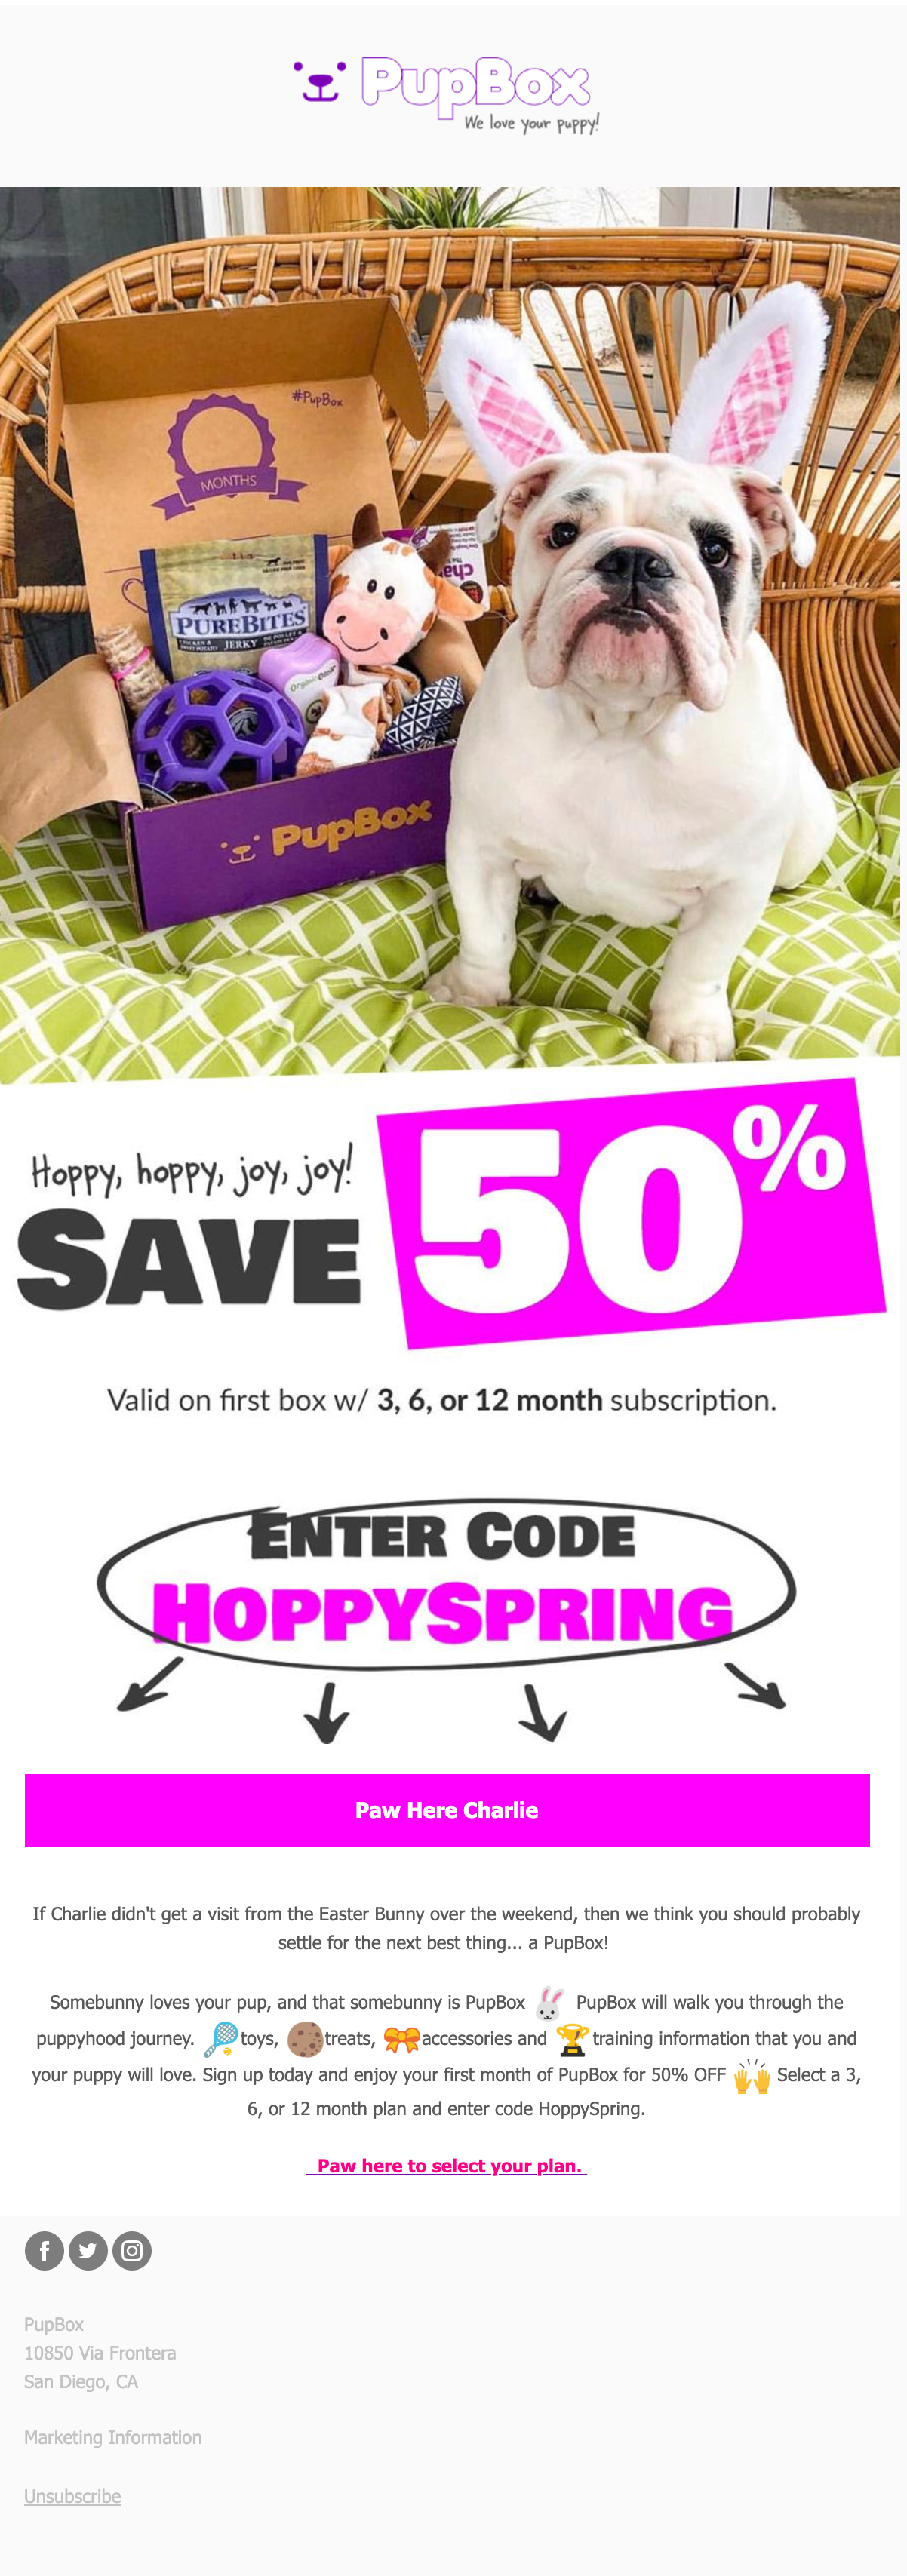 Easter Email Marketing Ideas For A Colorful Holiday In 2020 Email Template Design Email Design Marketing